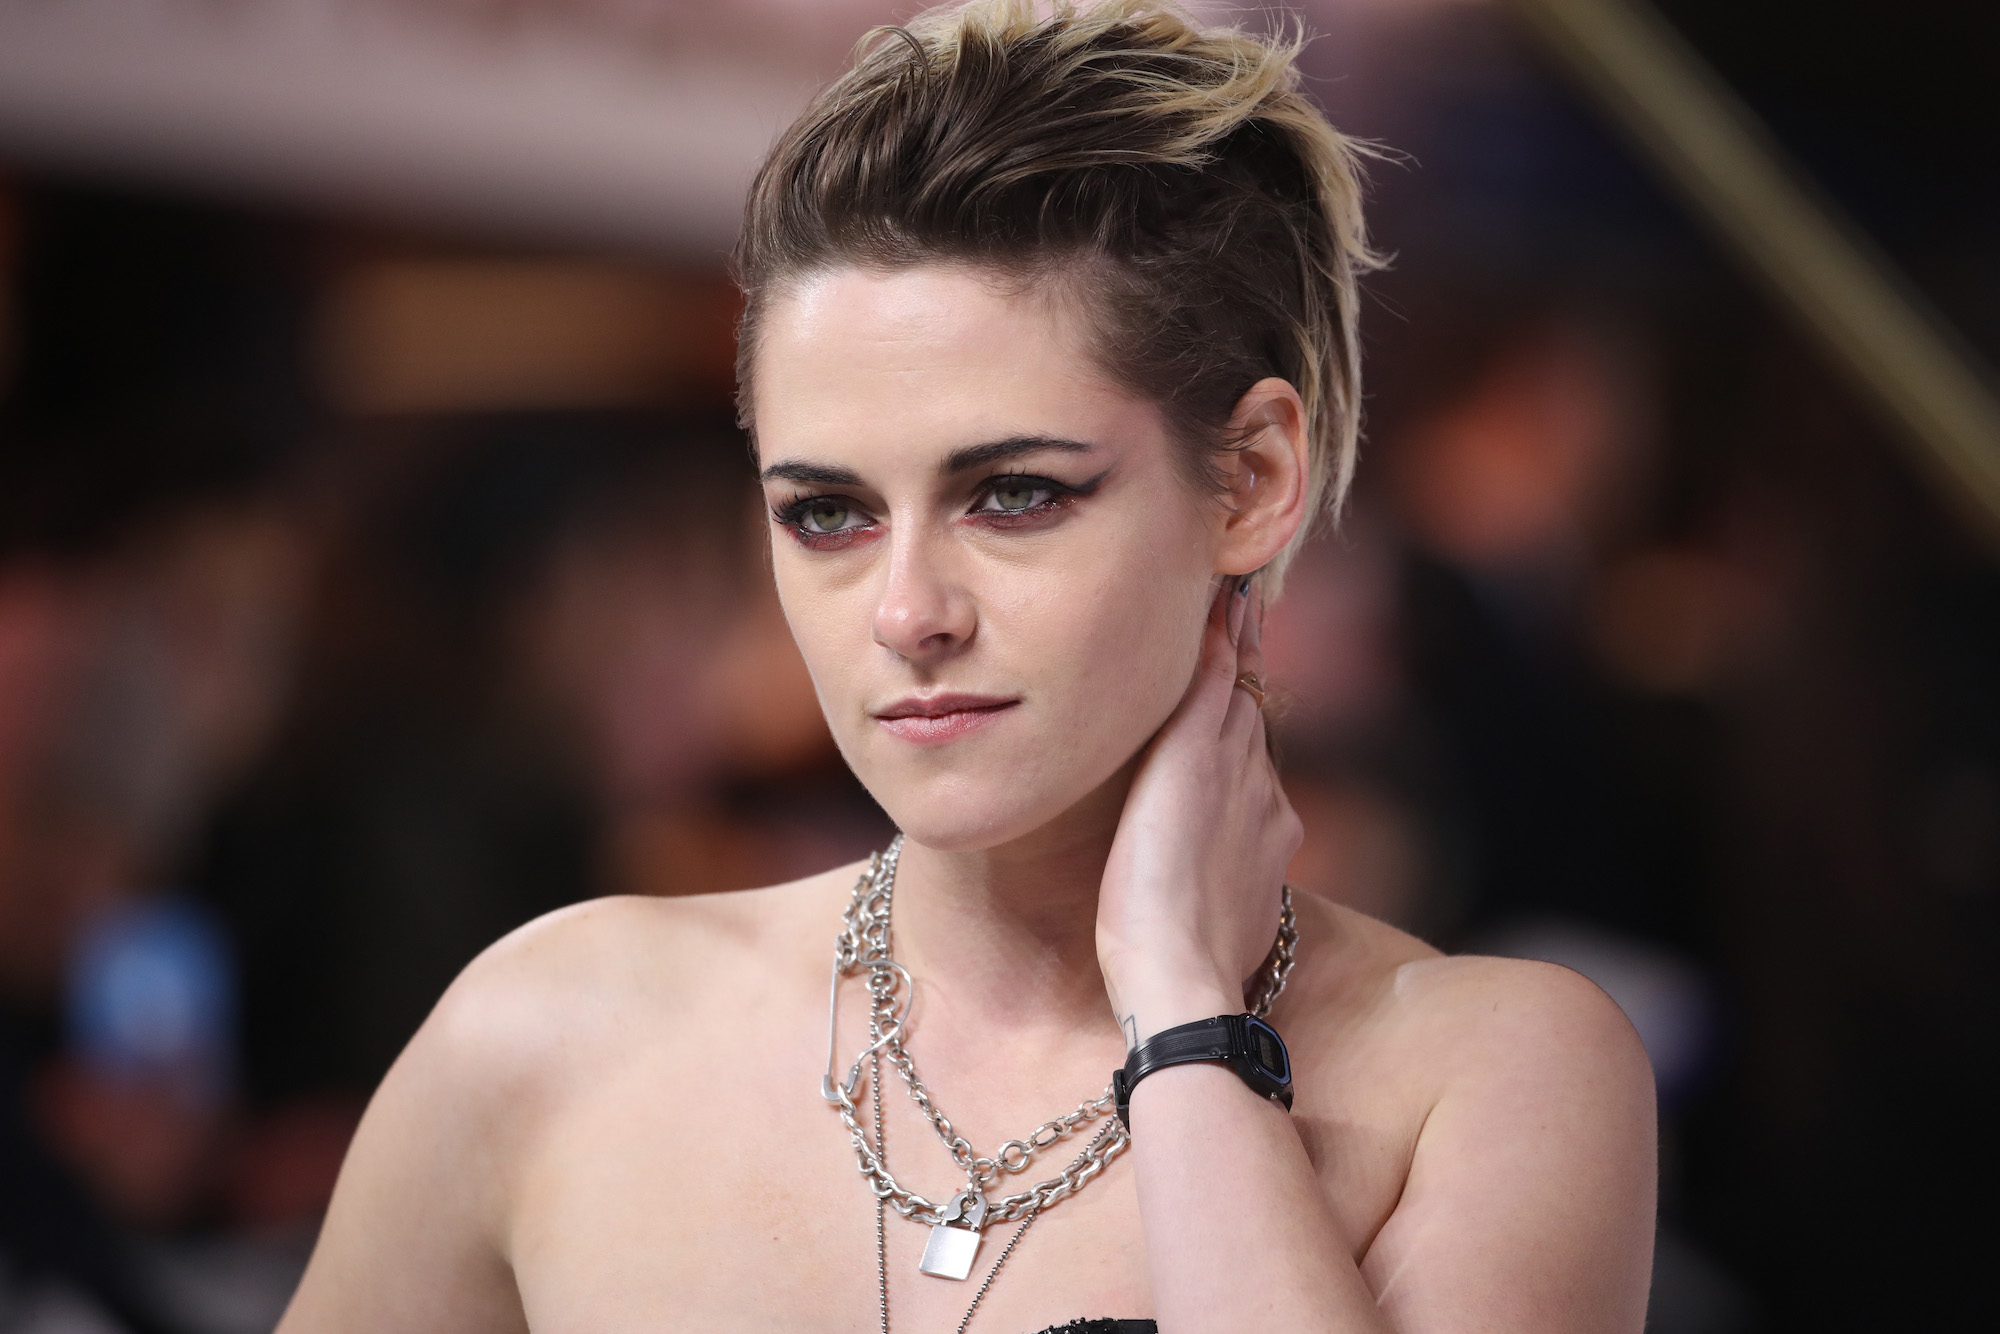 Kristen Stewart at the 'Charlies Angels' UK Premiere at The Curzon Mayfair on Nov. 20, 2019.